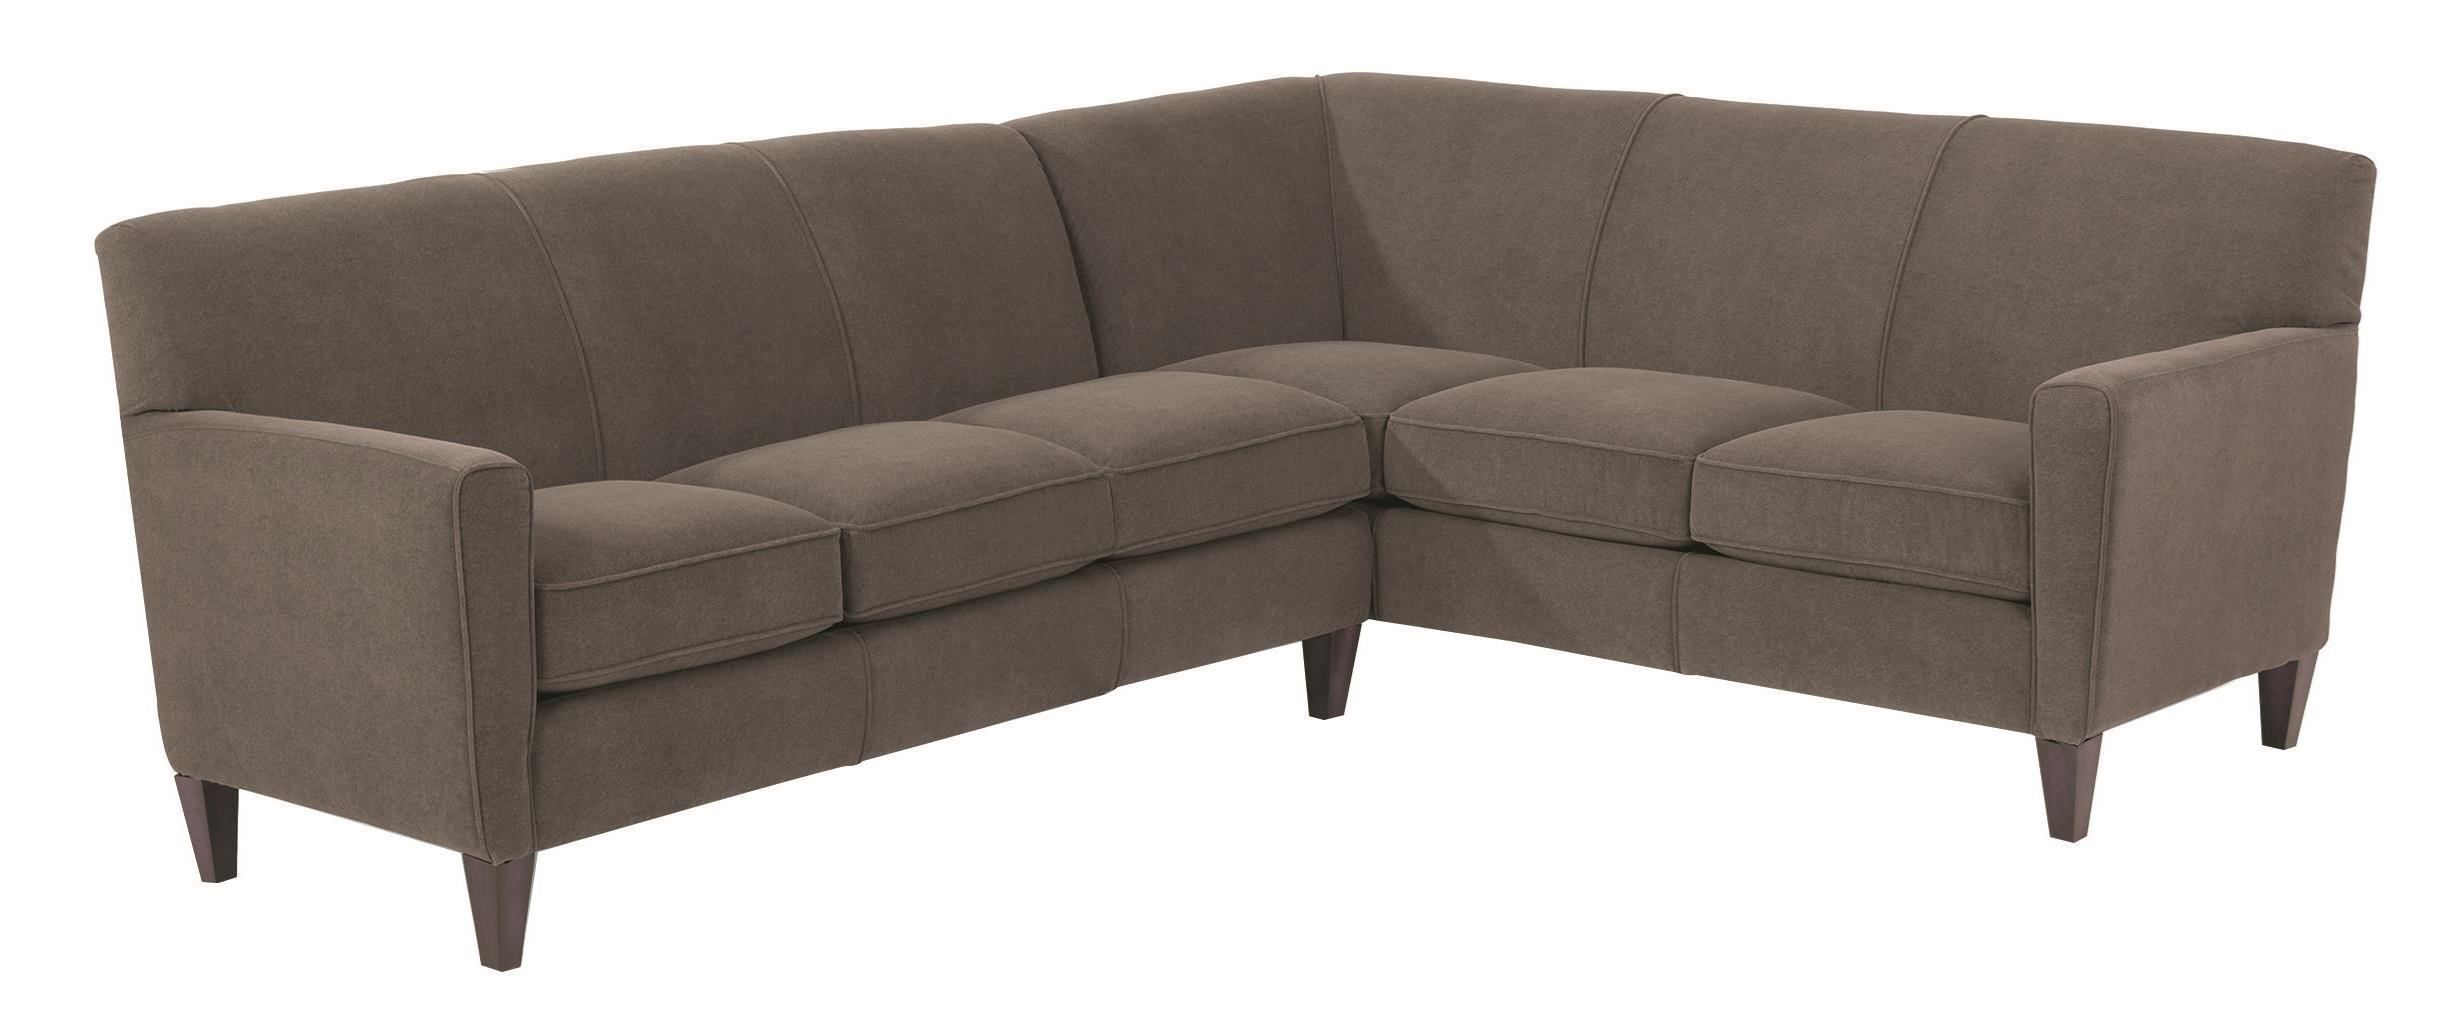 Flexsteel Digby5 Seat Sectional ...